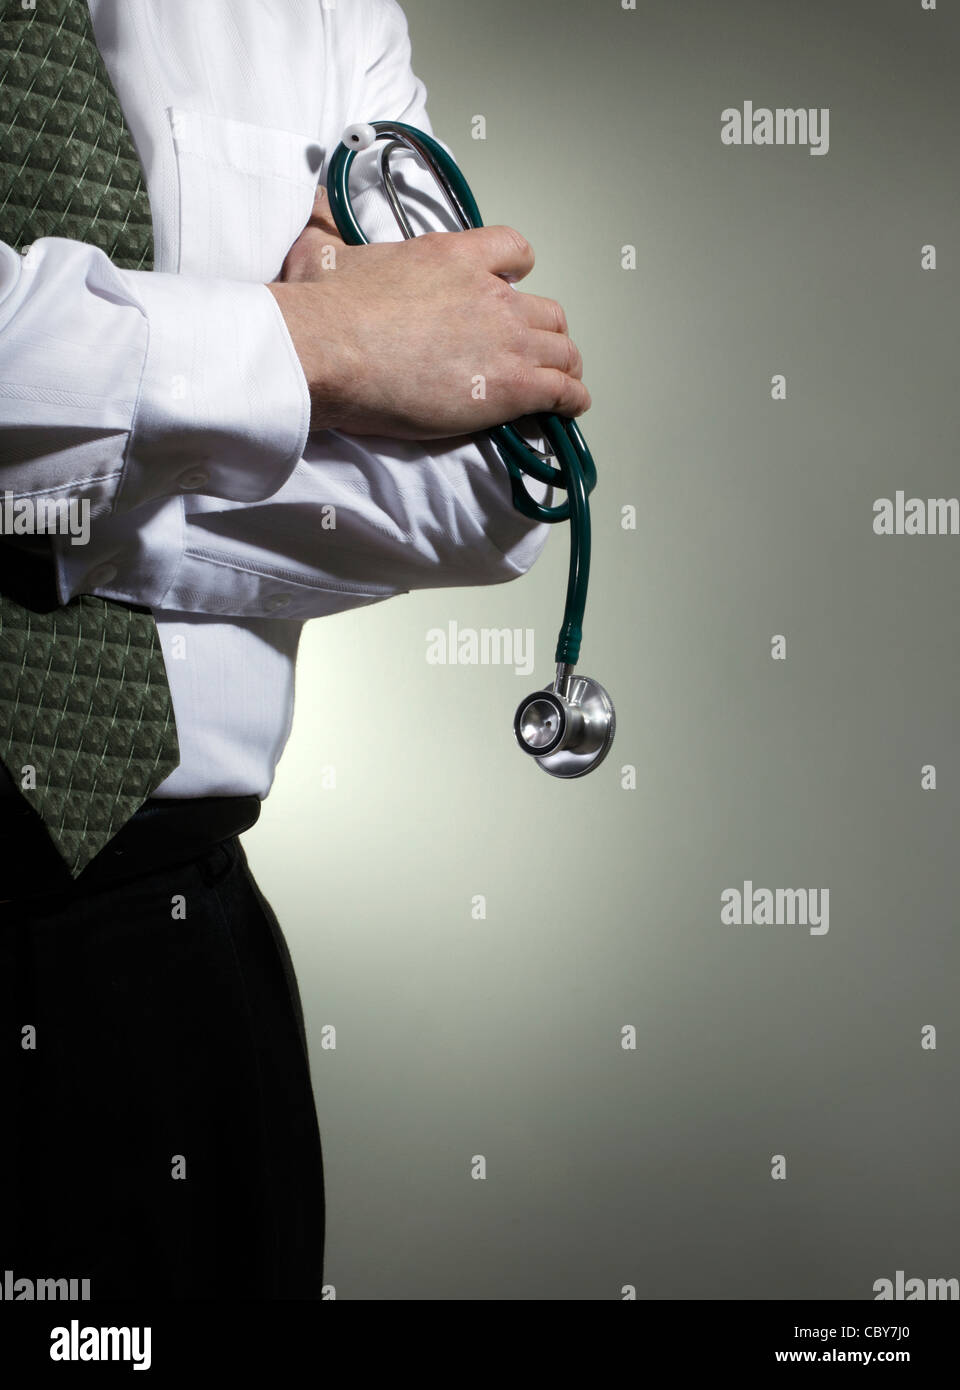 Doctor with stethoscope in Hand - Stock Image